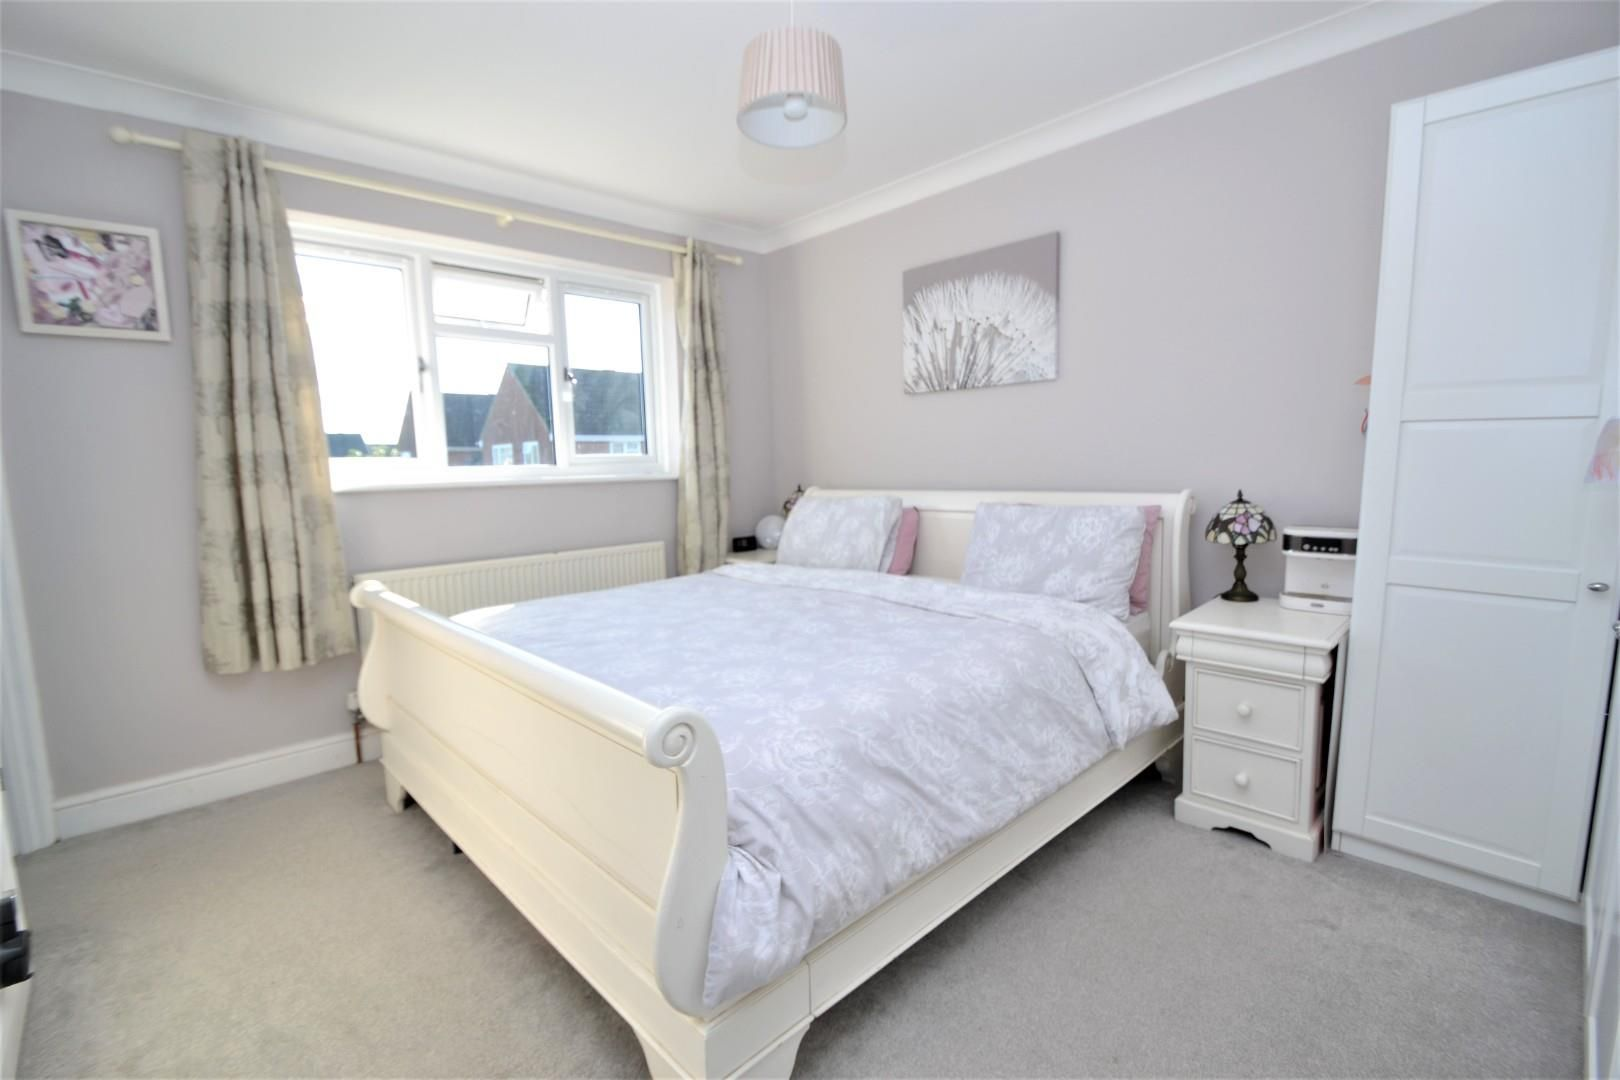 4 bed house for sale 7